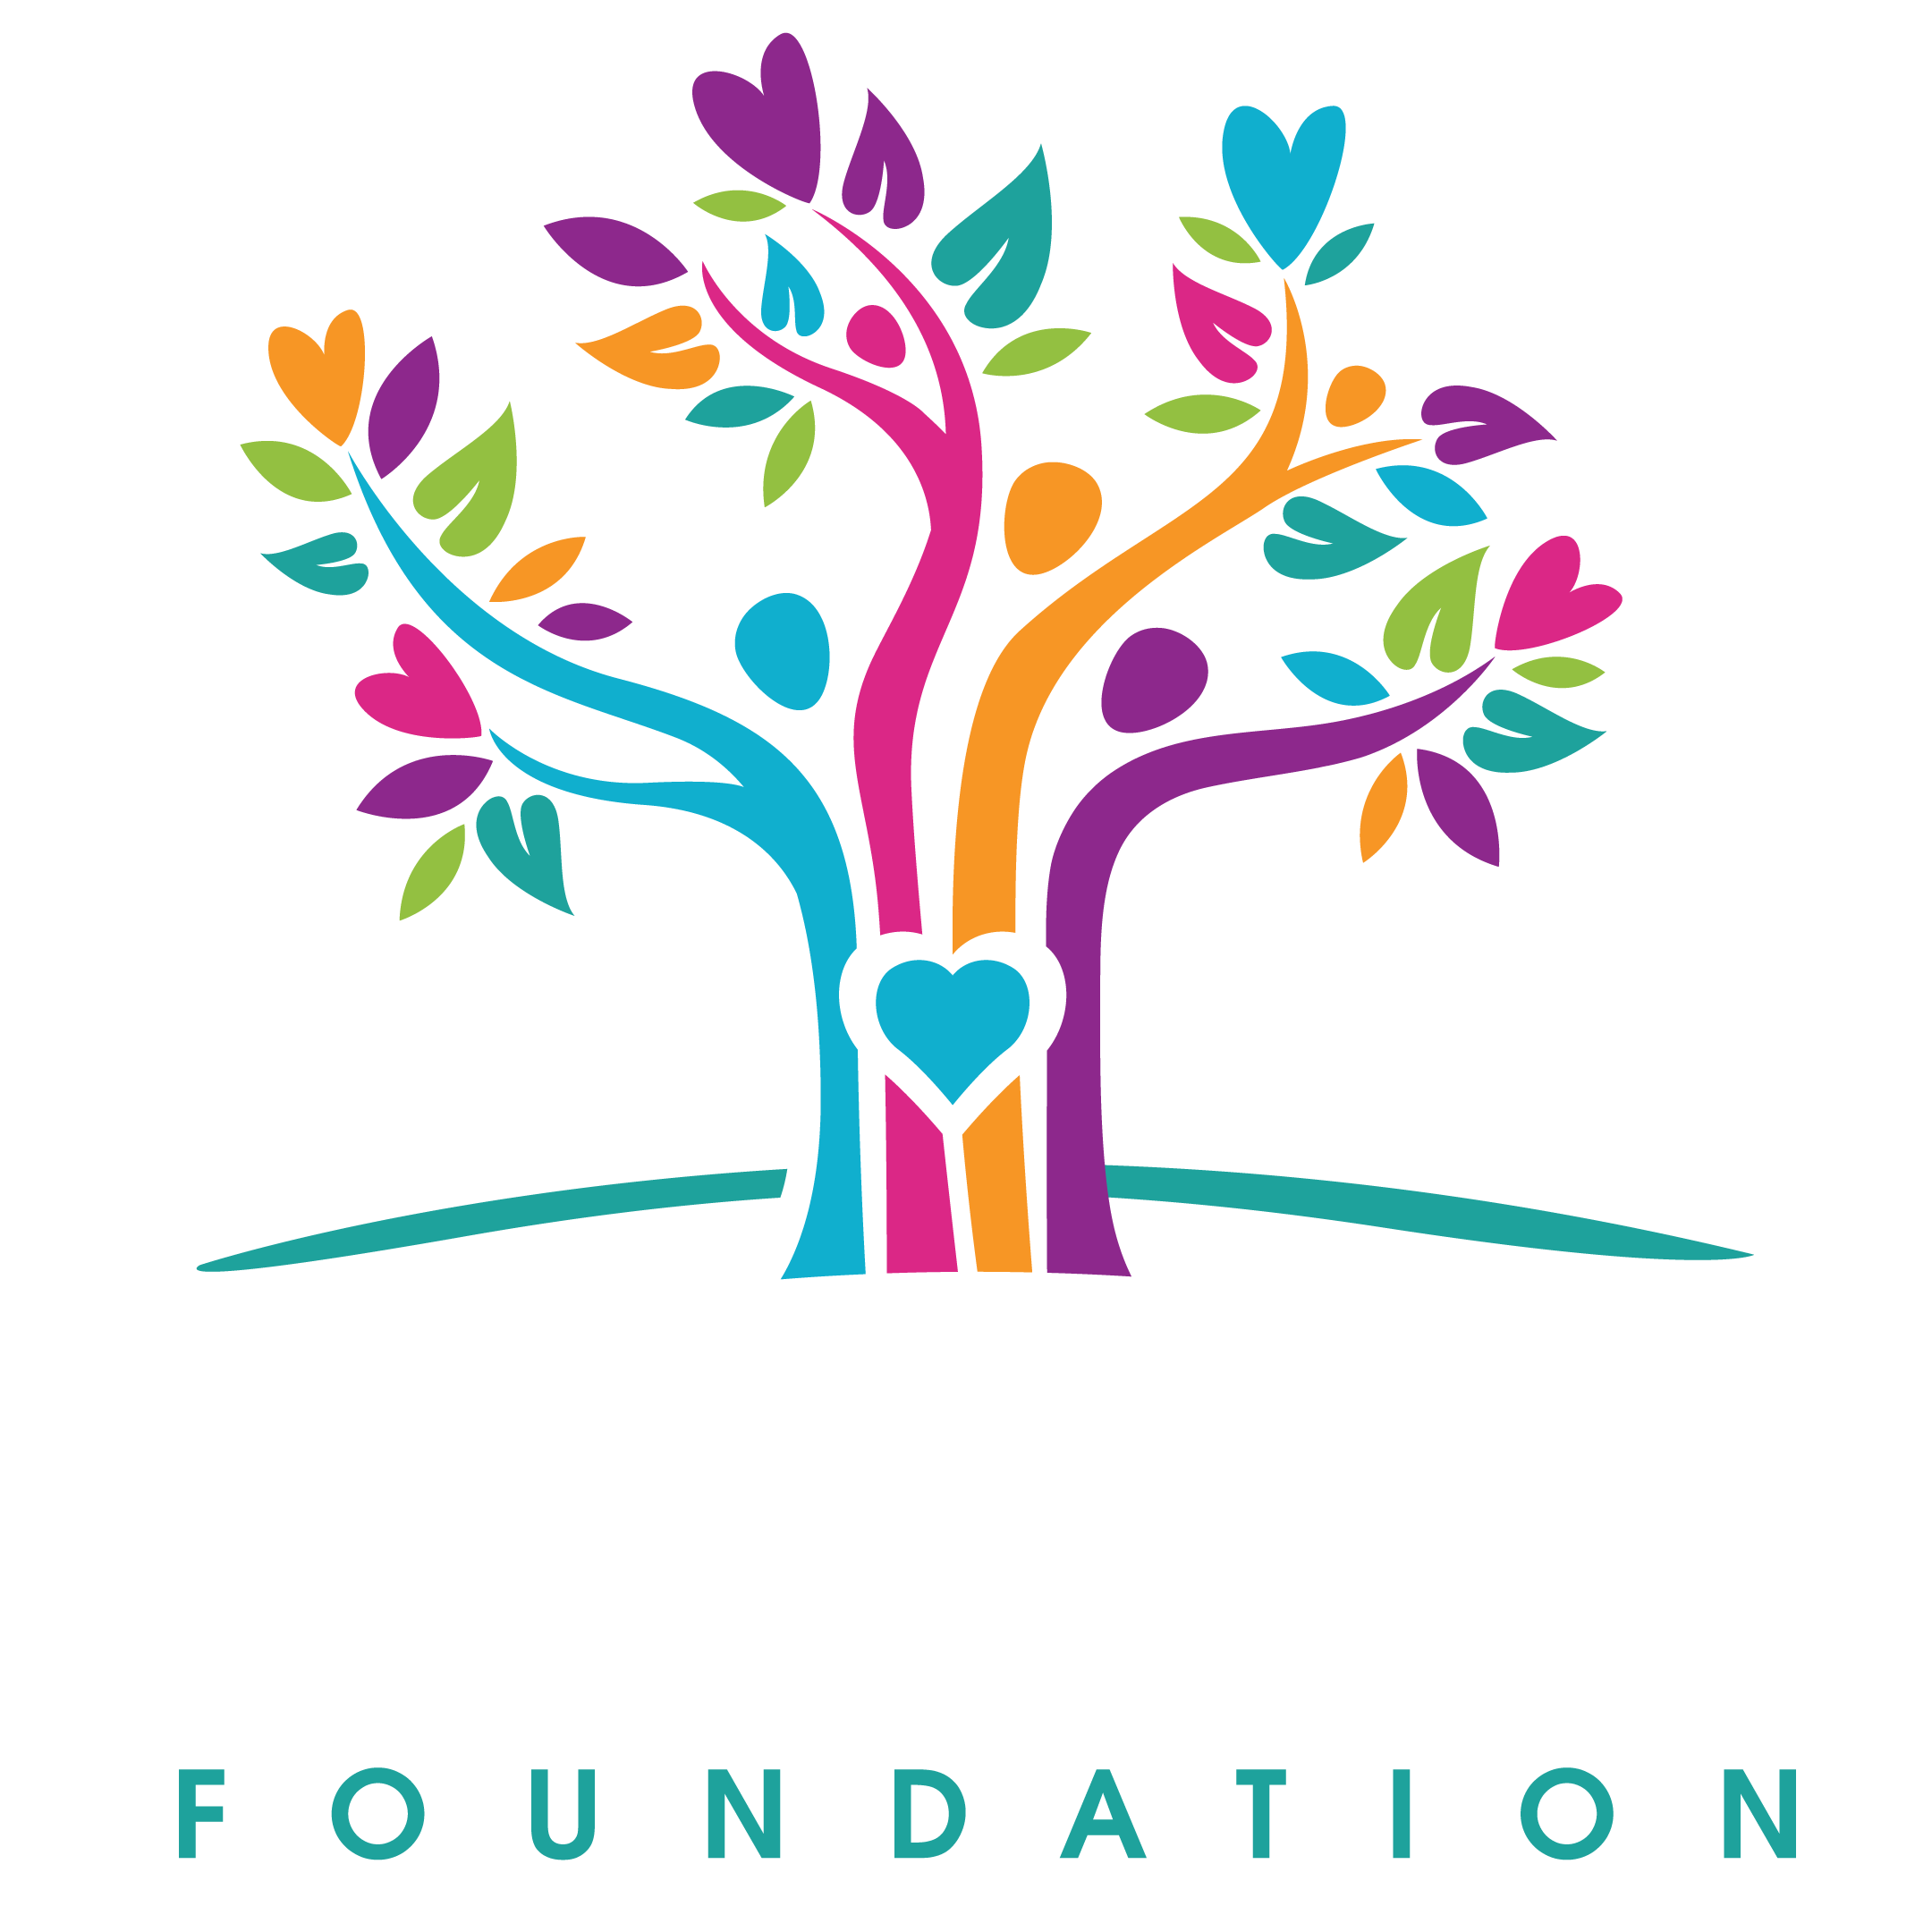 Hatima Foundation